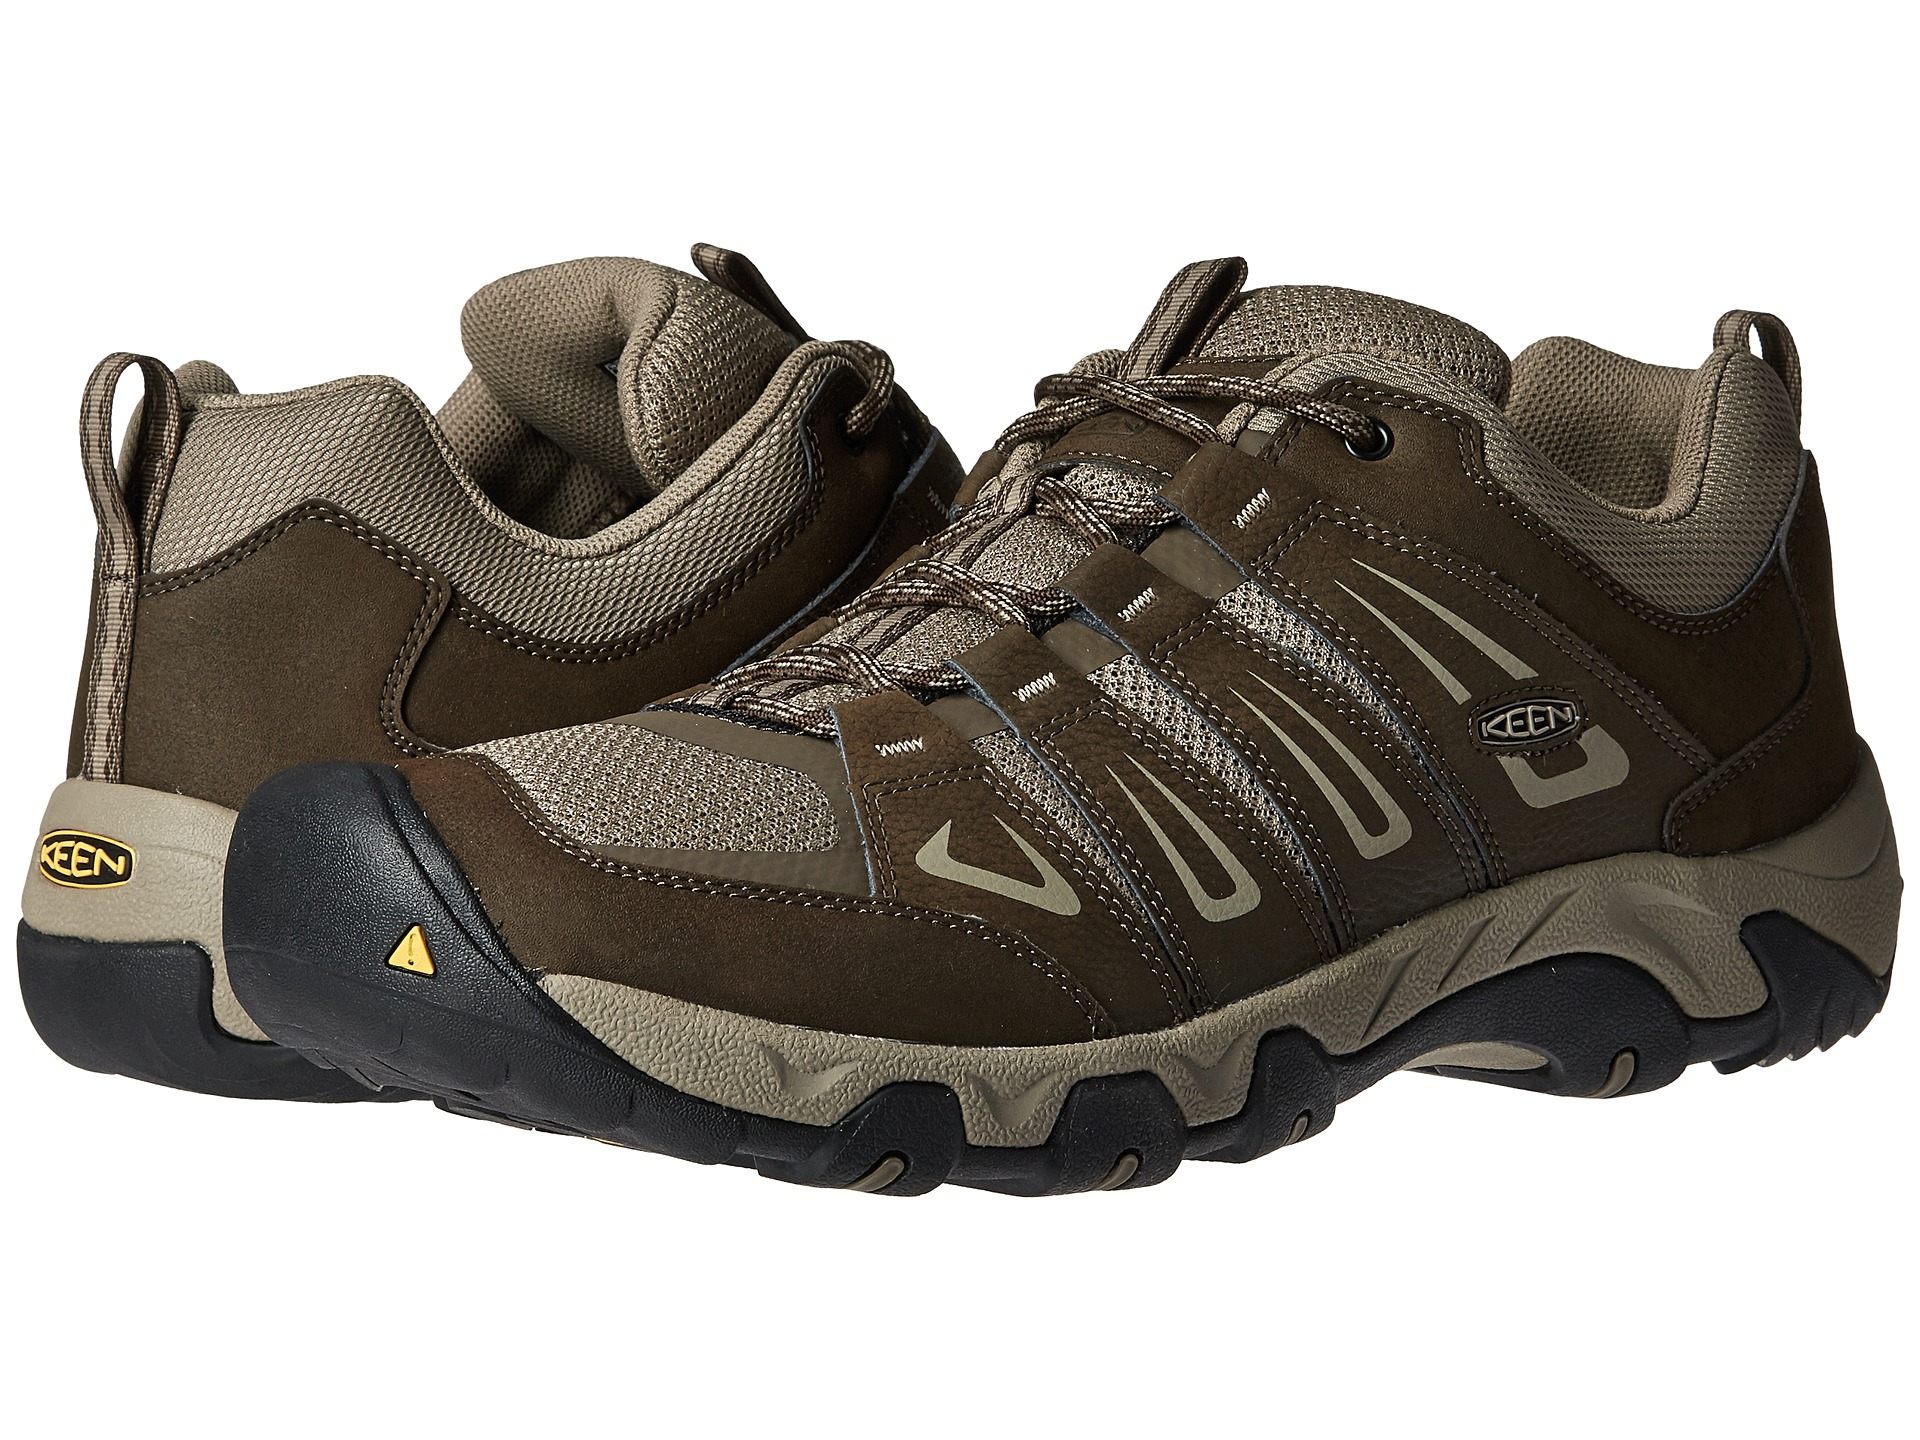 Jul 20,  · Keen Shoes, Sandals, Bags | Zappos Free Shipping ALWAYS. Shop the latest in Keen sandals, shoes and boots. Enjoy free shipping BOTH ways, day return policy, customer service. Call Keen Mens | Shipped Free at Zappos: Free shipping BOTH ways on keen mens, from our vast selection of styles.